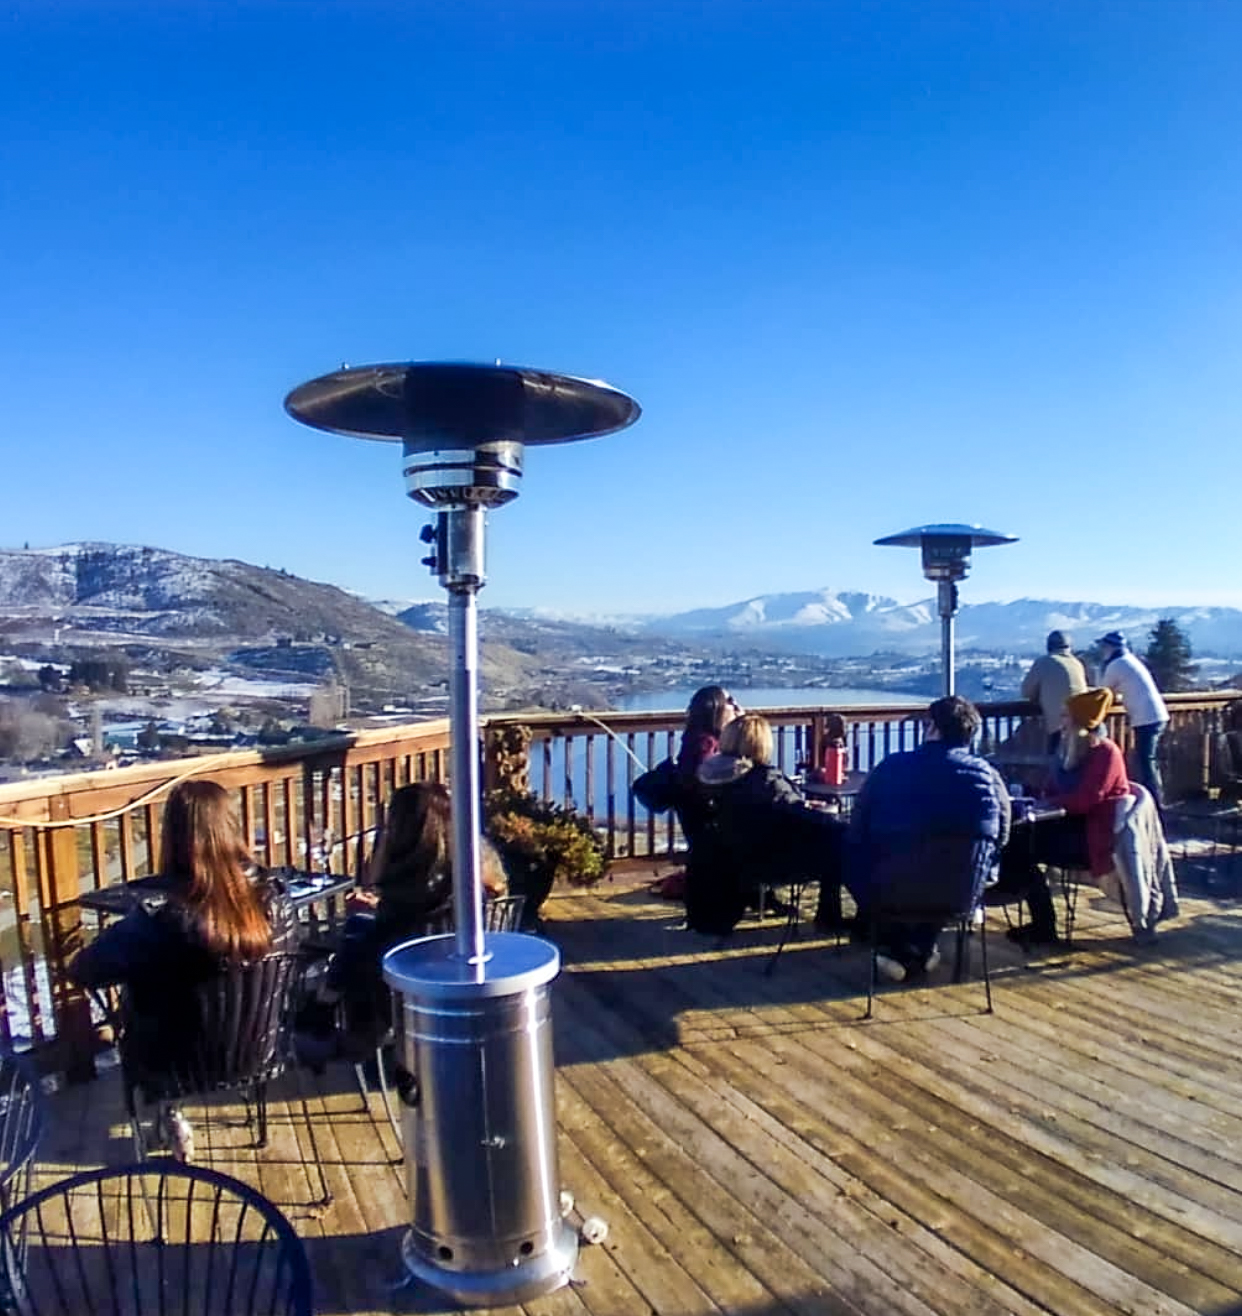 Deck with people at tables and heat lamps, overlooking a large lake. Snow-covered mountains are in the distance, with a bright blue winter sky.